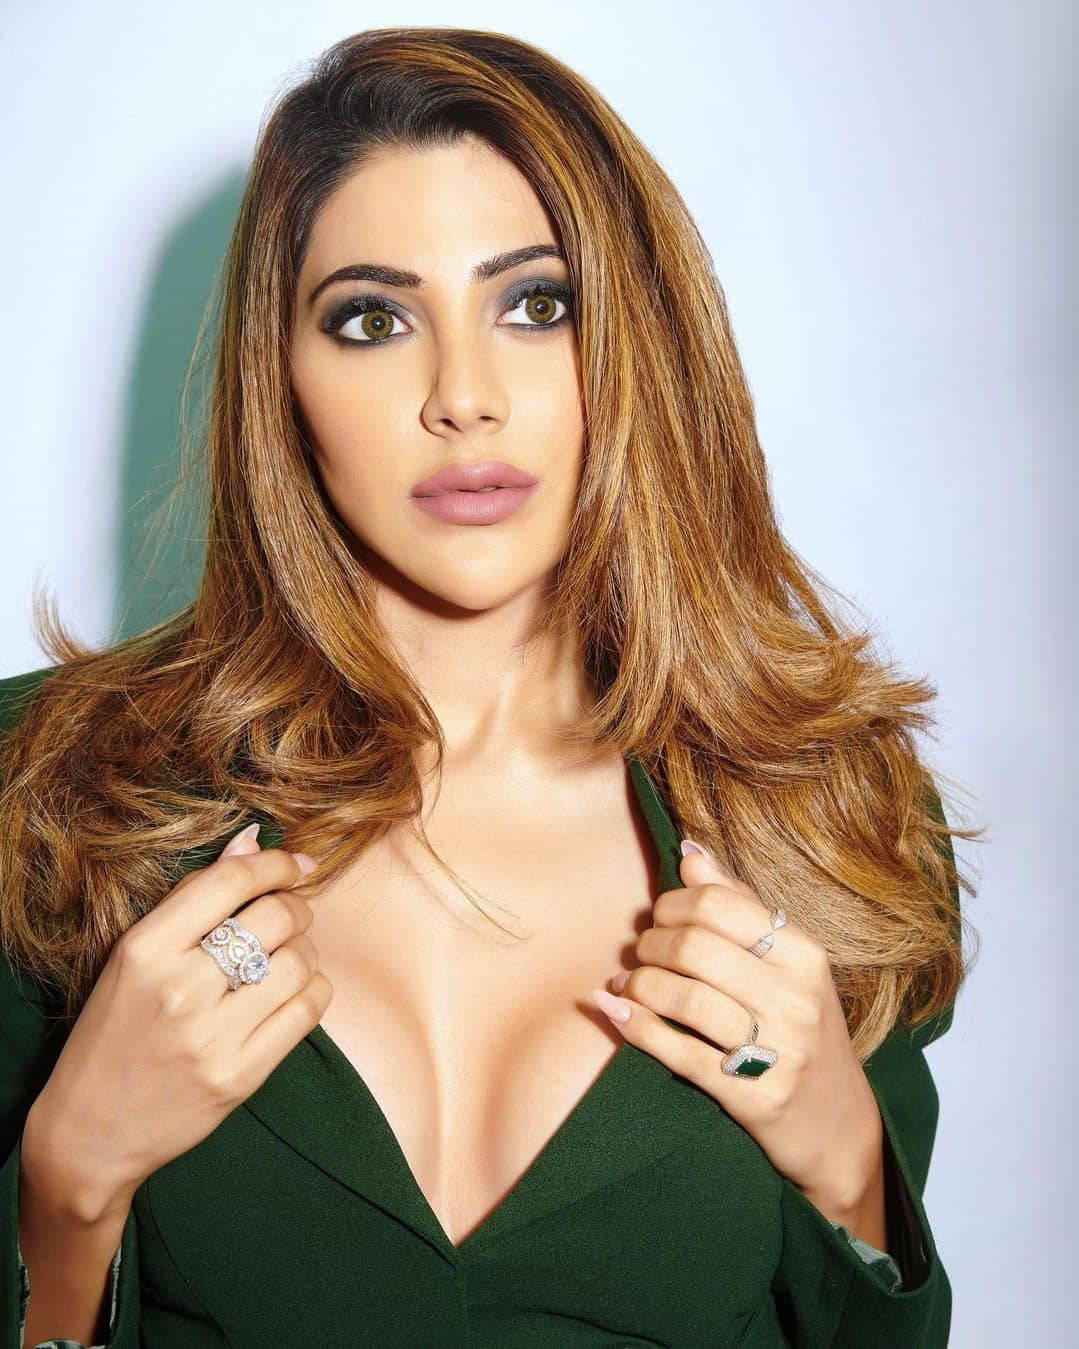 Nikki Tamboli Hot and Sexy Pictures In Green Dress - Insta Stars